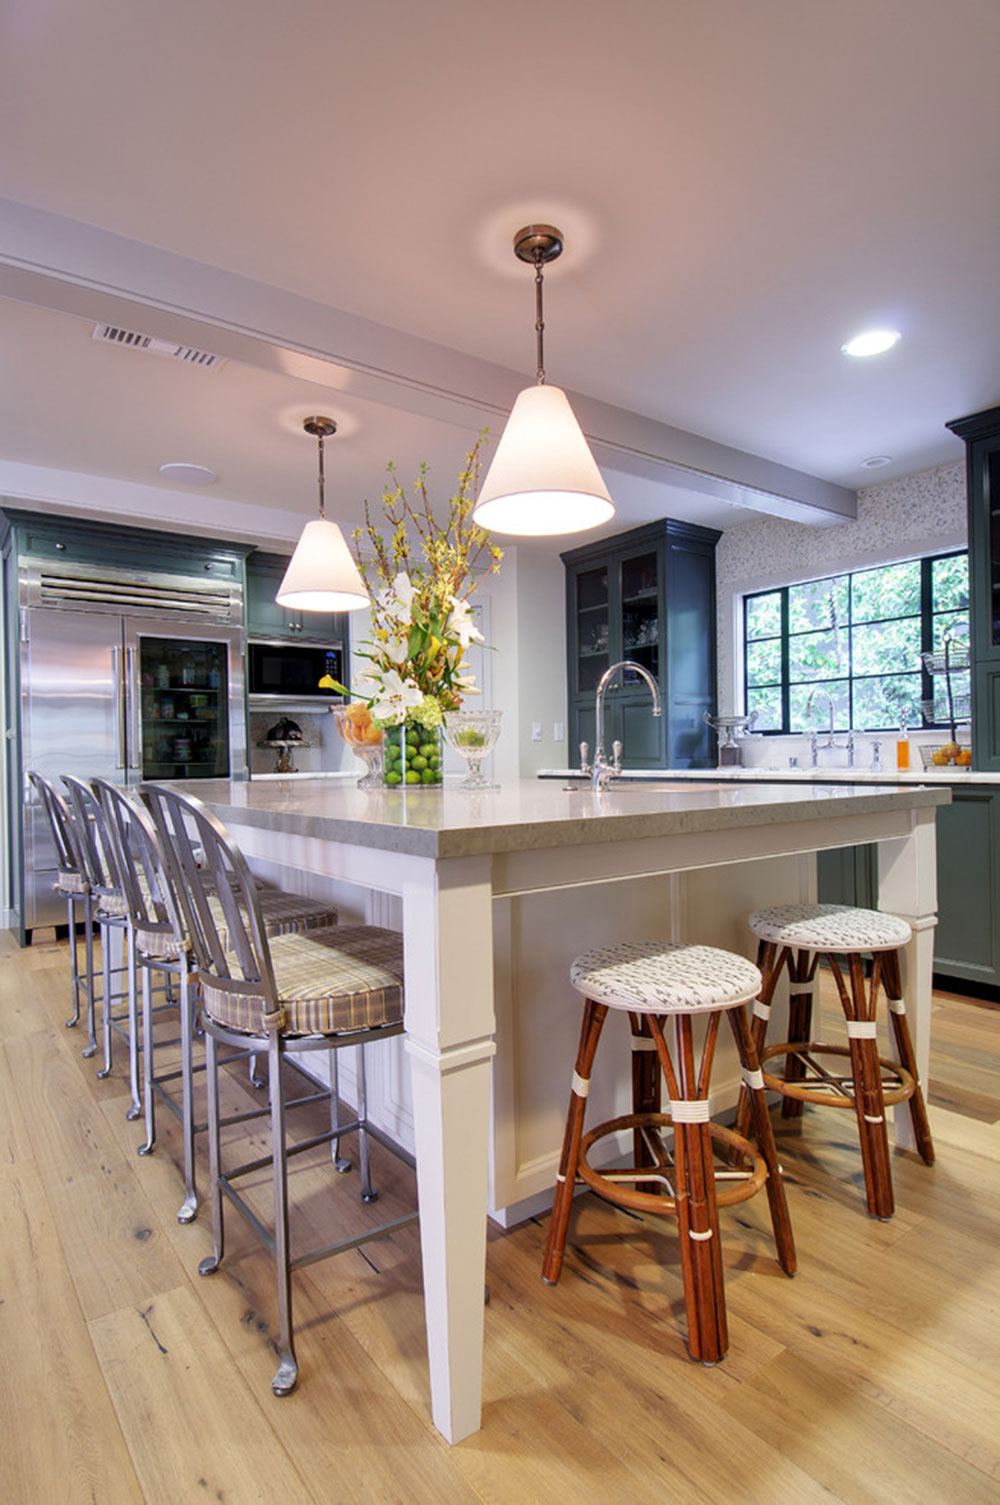 Modern Kitchen Island Designs With Seating 7 Modern Kitchen Island